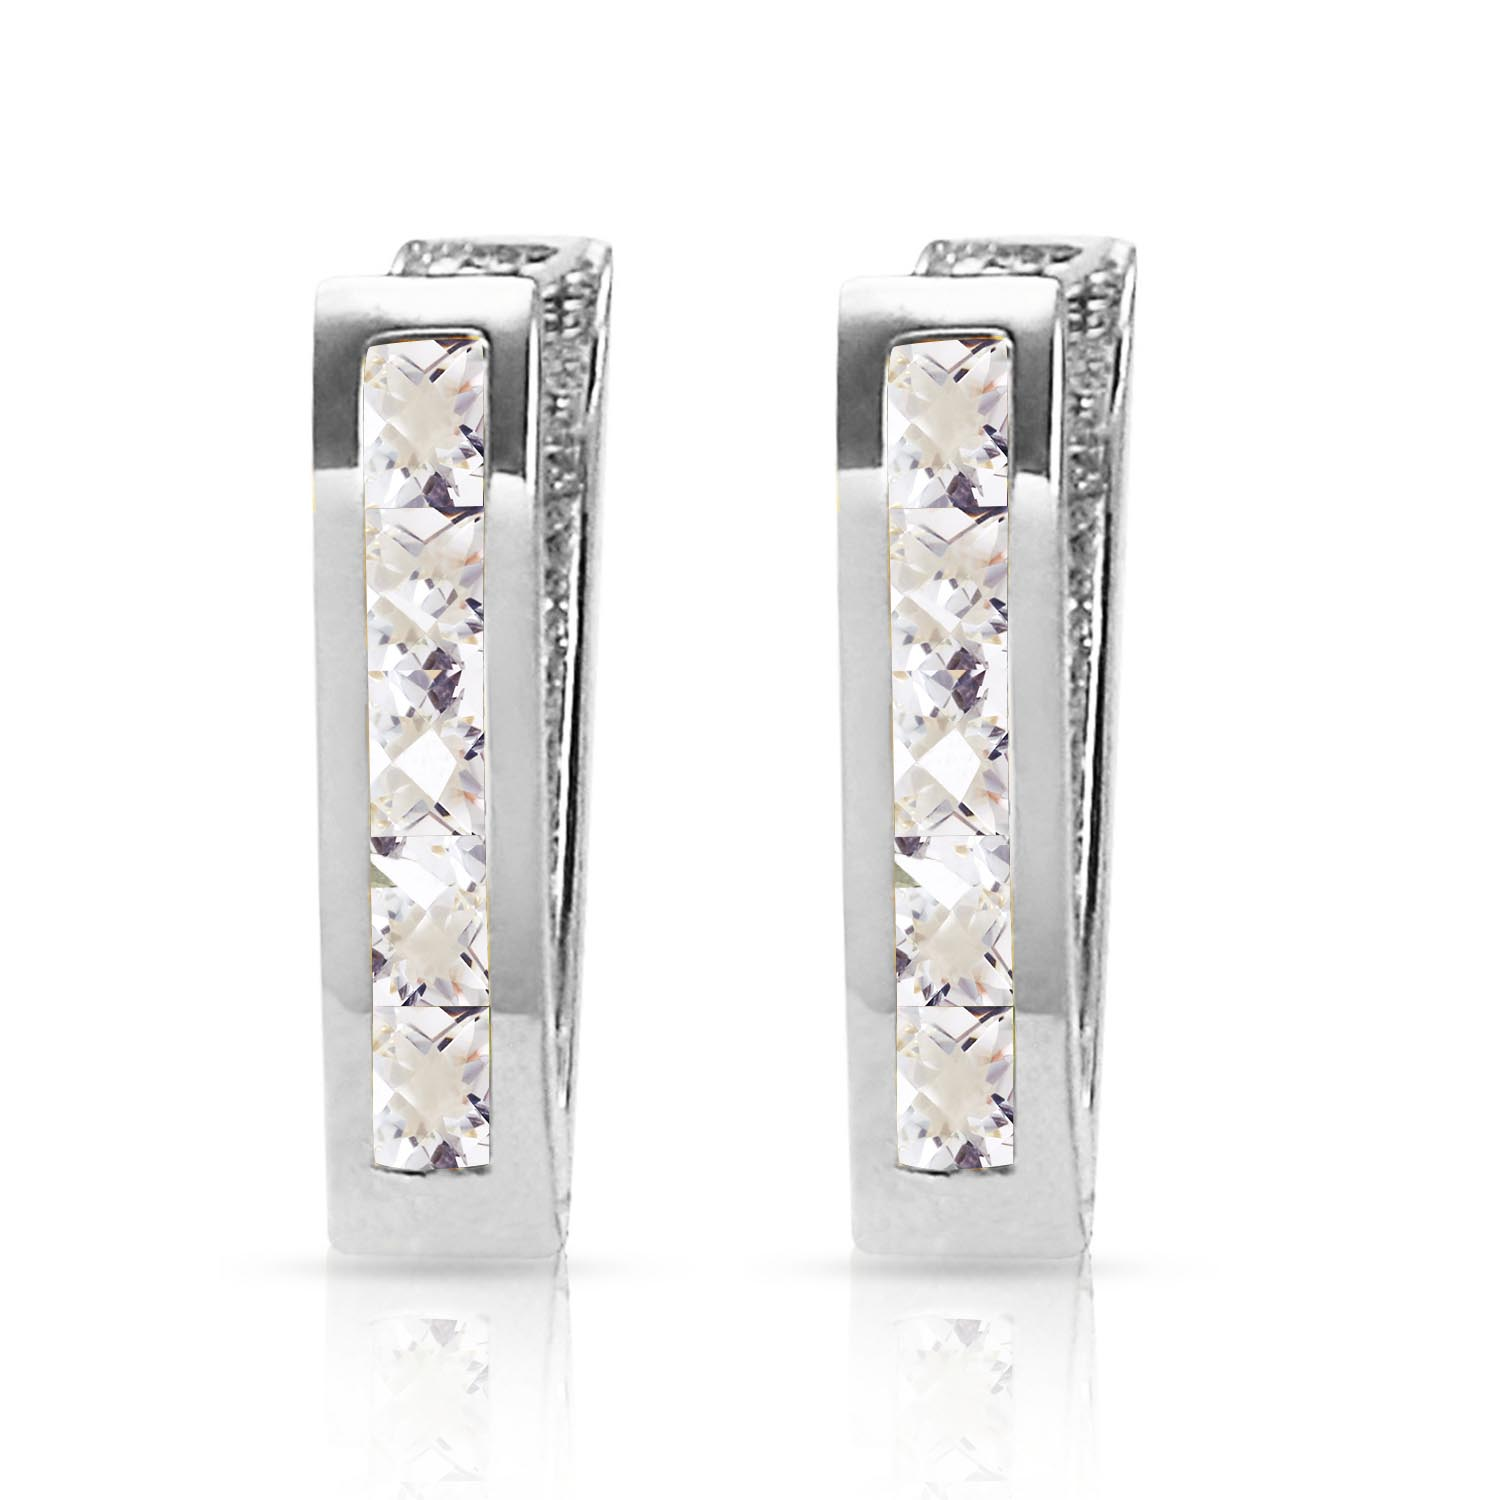 White Topaz Acute Huggie Earrings 1.2ctw in 14K White Gold